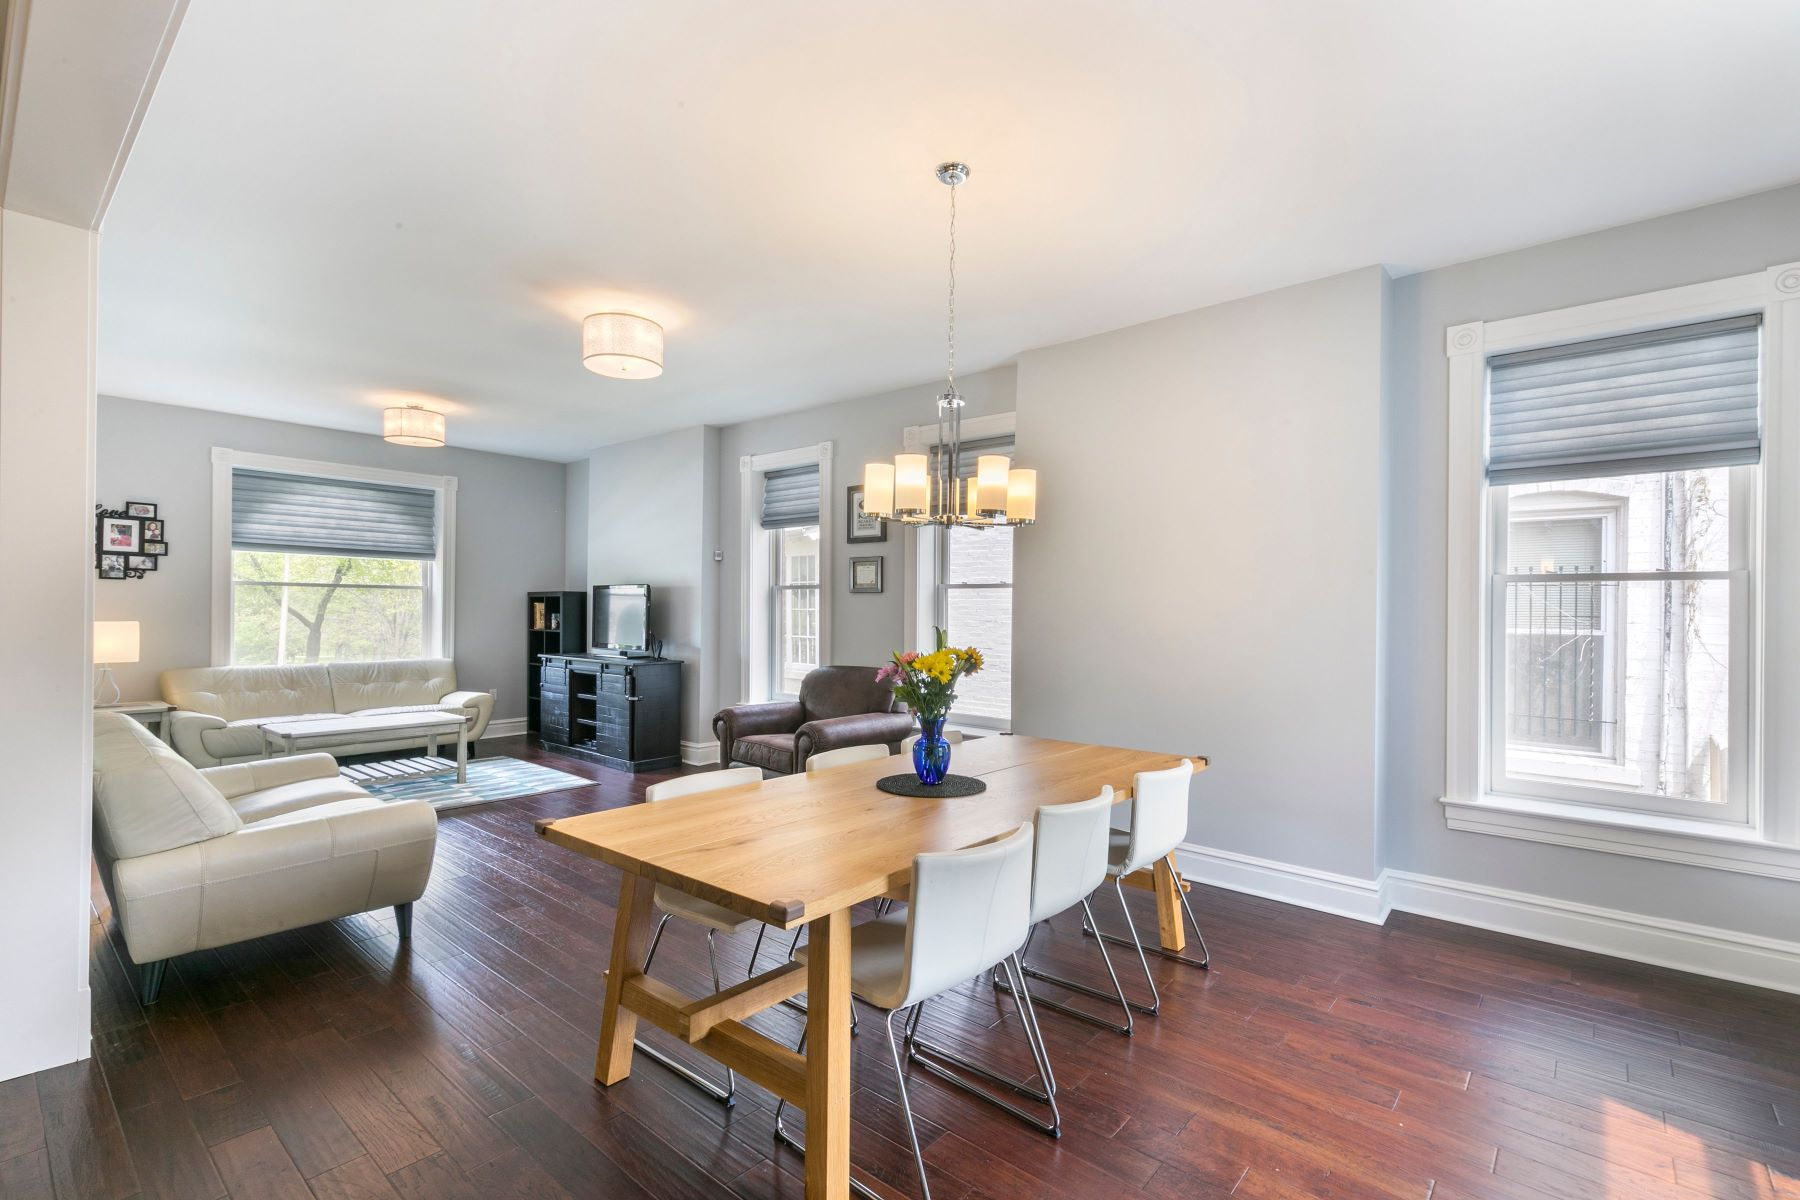 Additional photo for property listing at Renovated, Park View Home 3806 Arsenal Street St. Louis, Missouri 63116 United States